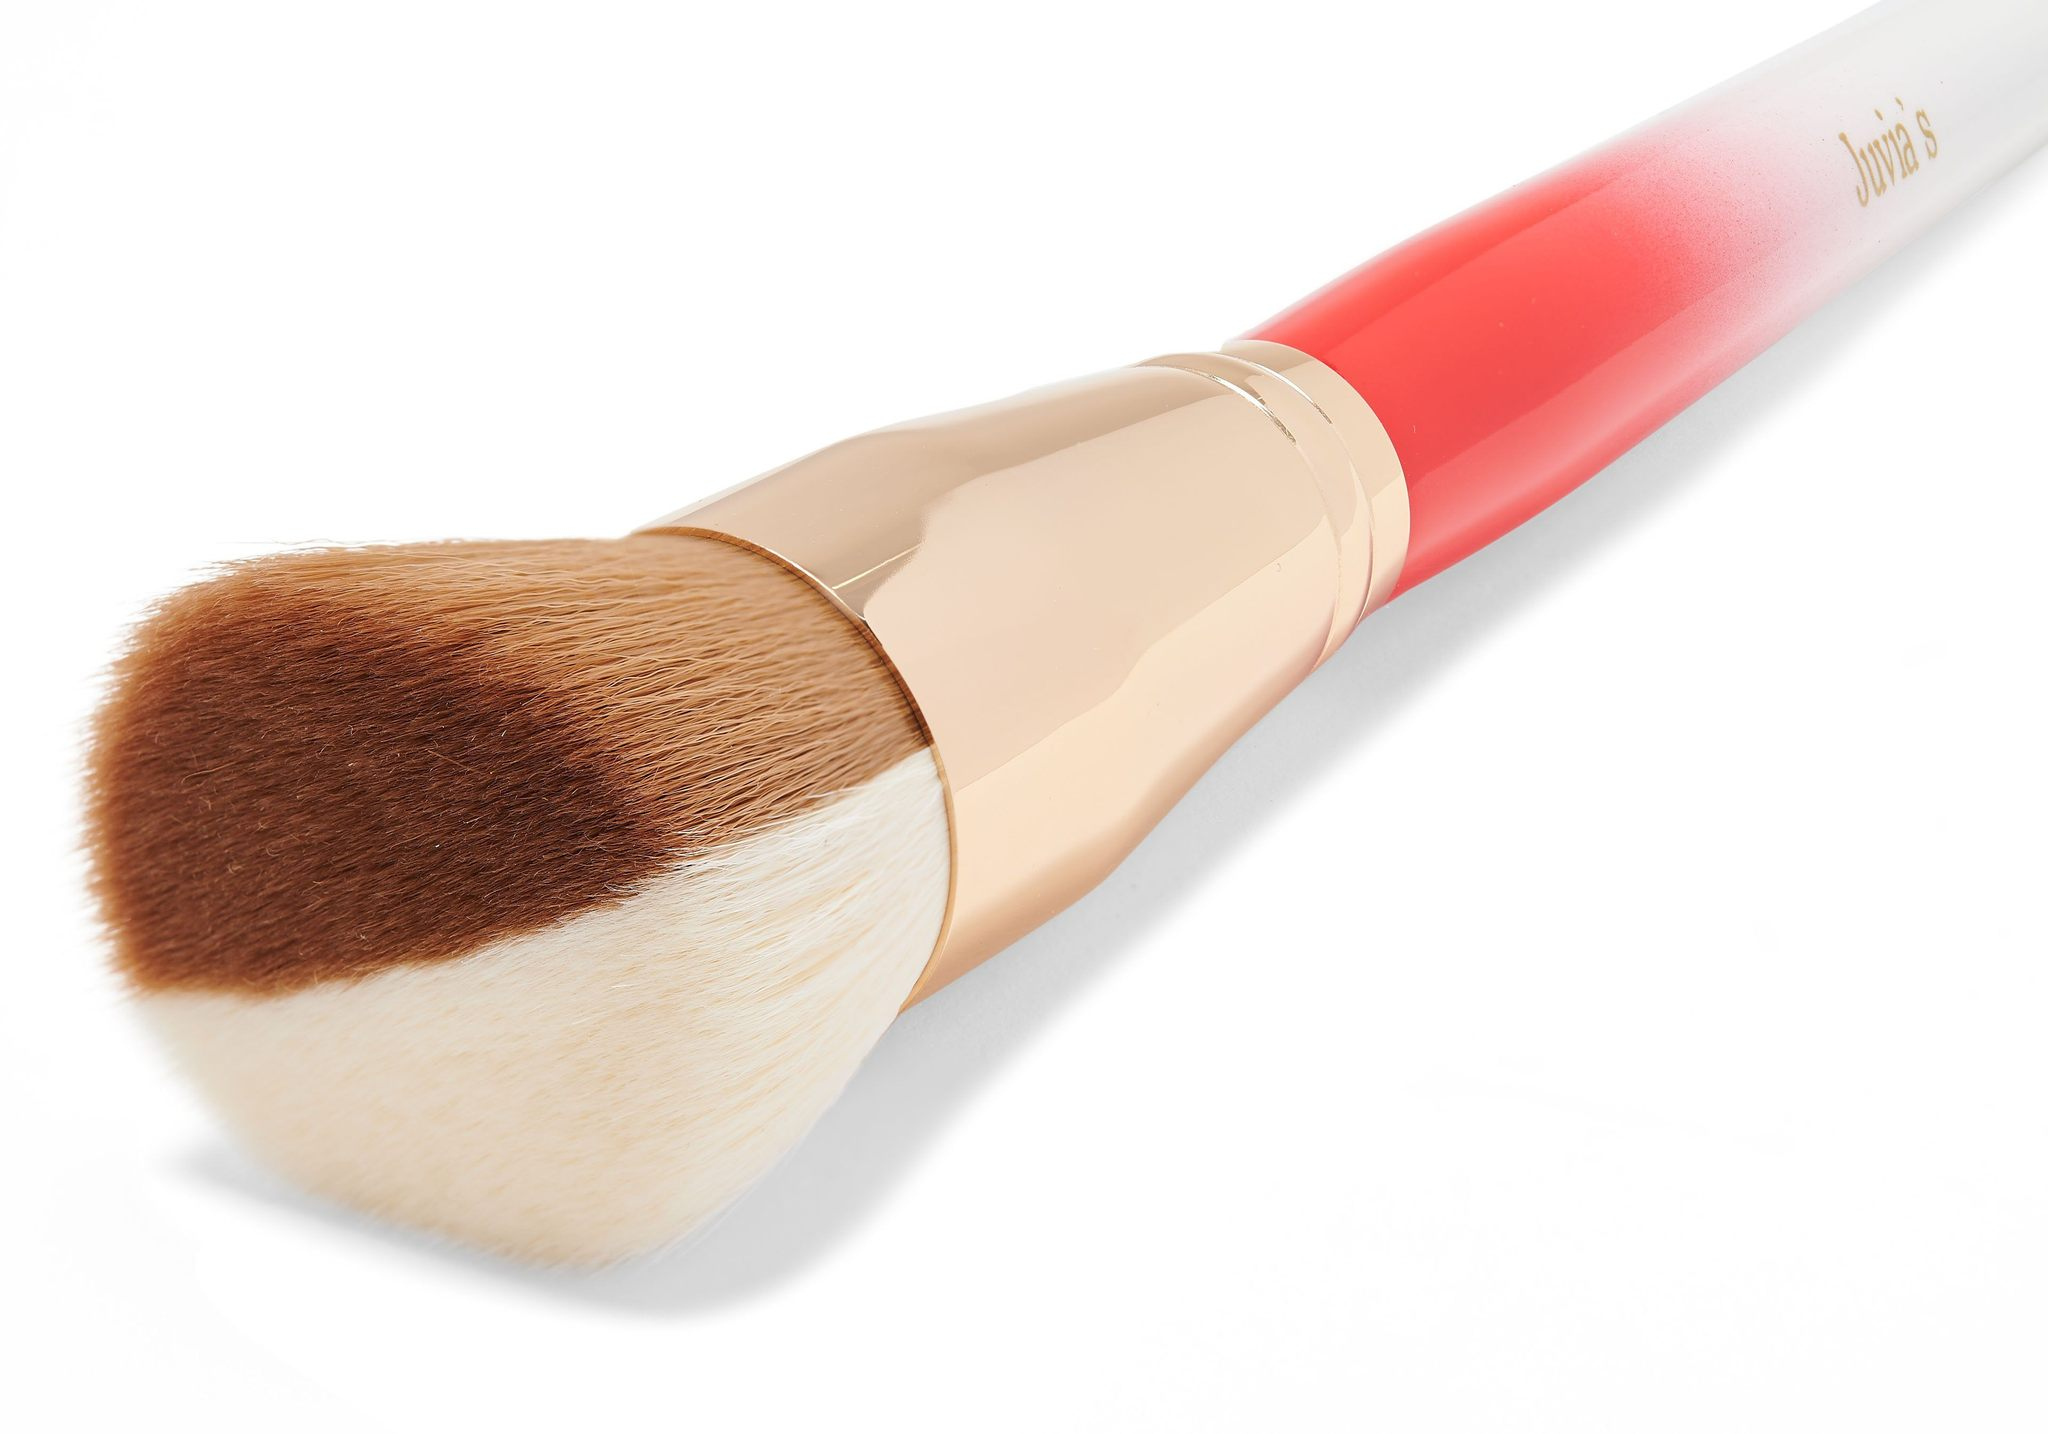 I Am Magic FLAT TOP Foundation Brush JUVIA'S PLACE - Pinceau spécial fond de teint